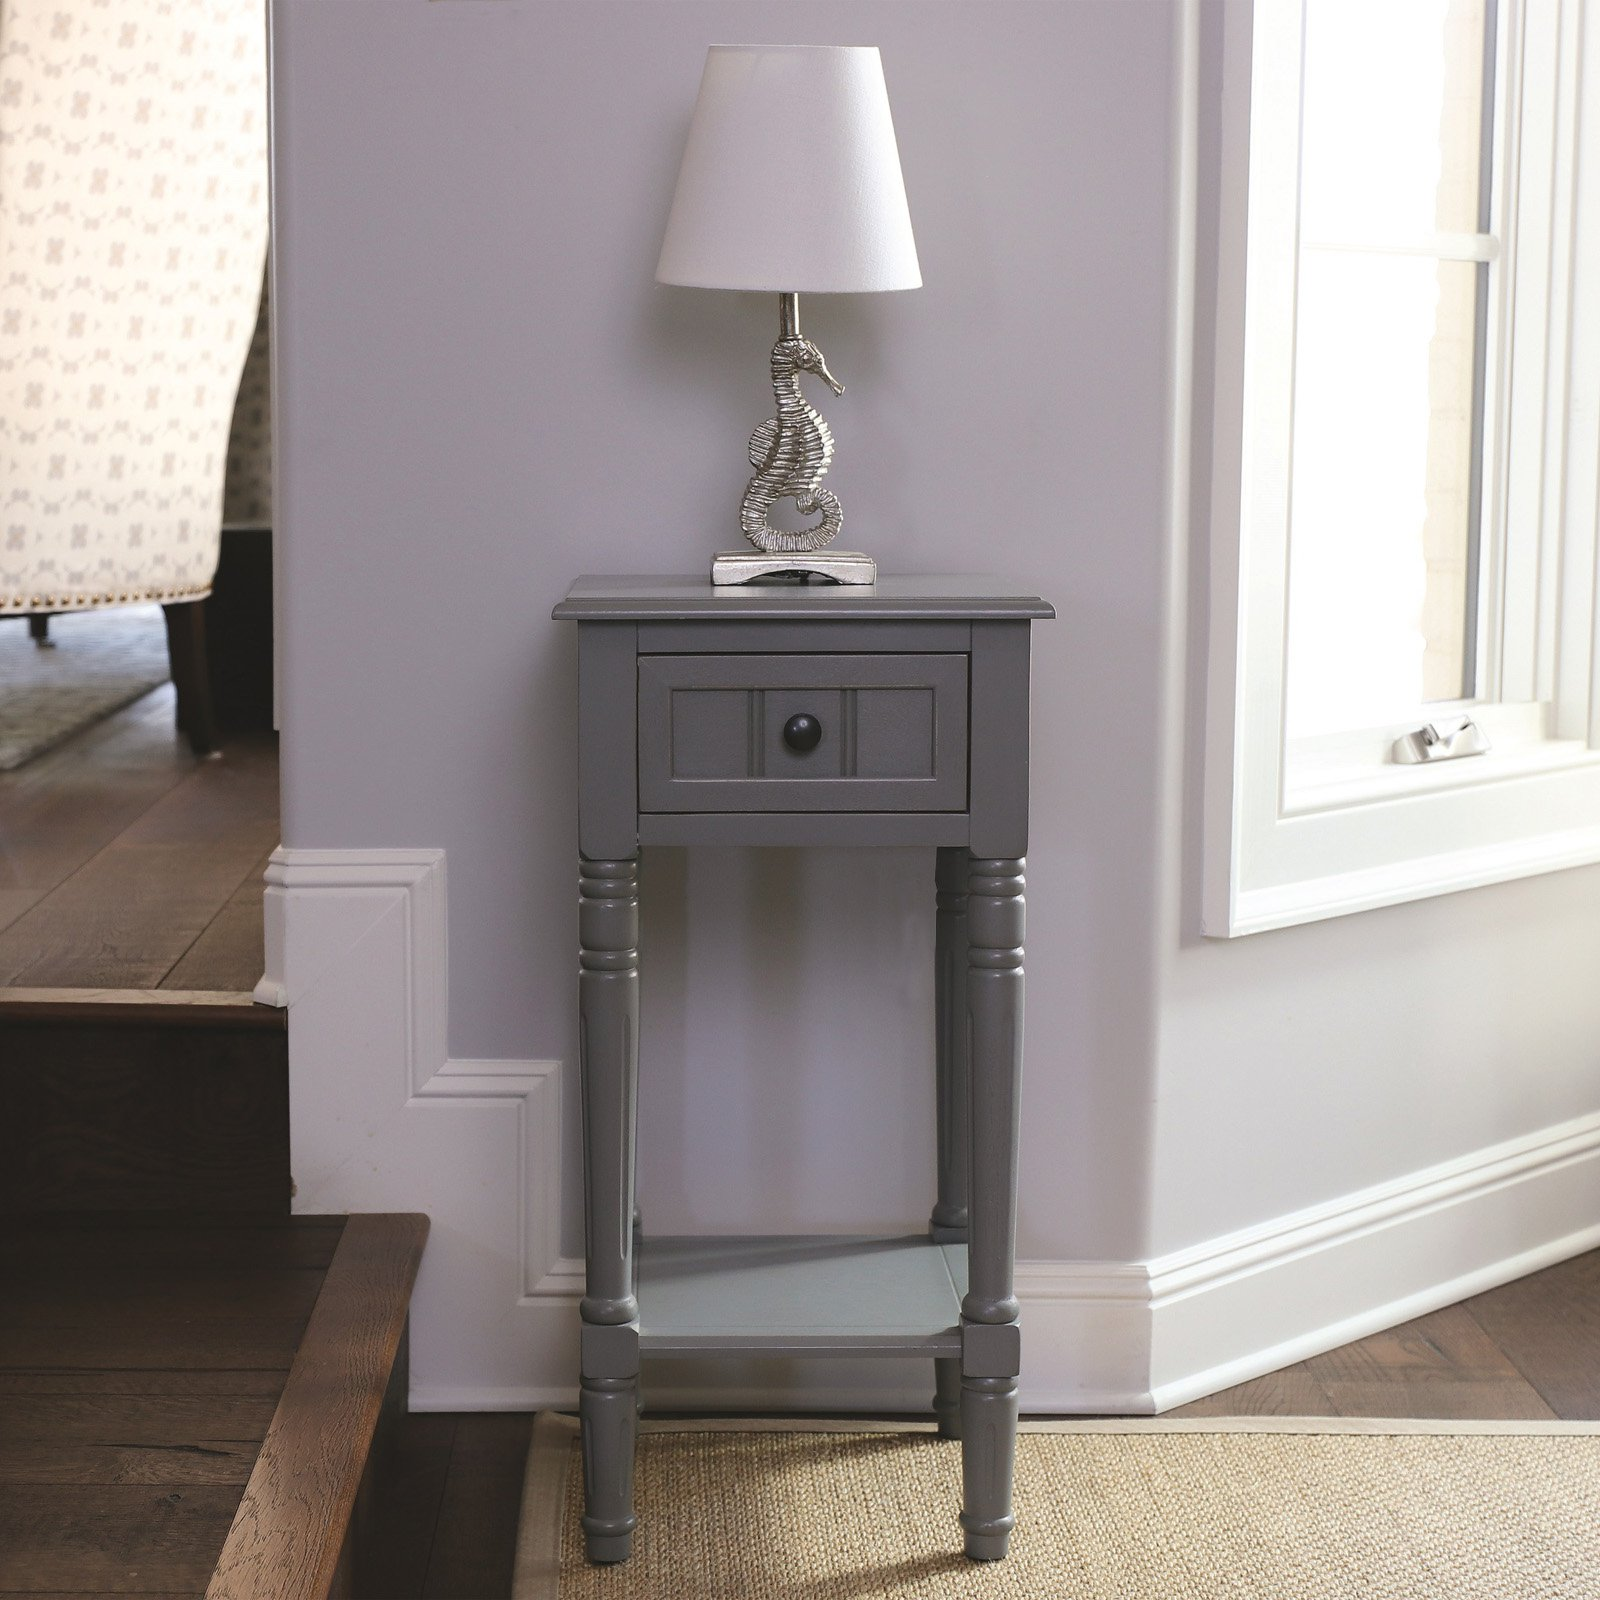 Simplify 1-Drawer Square Accent Table by JIMCO LAMP CO.